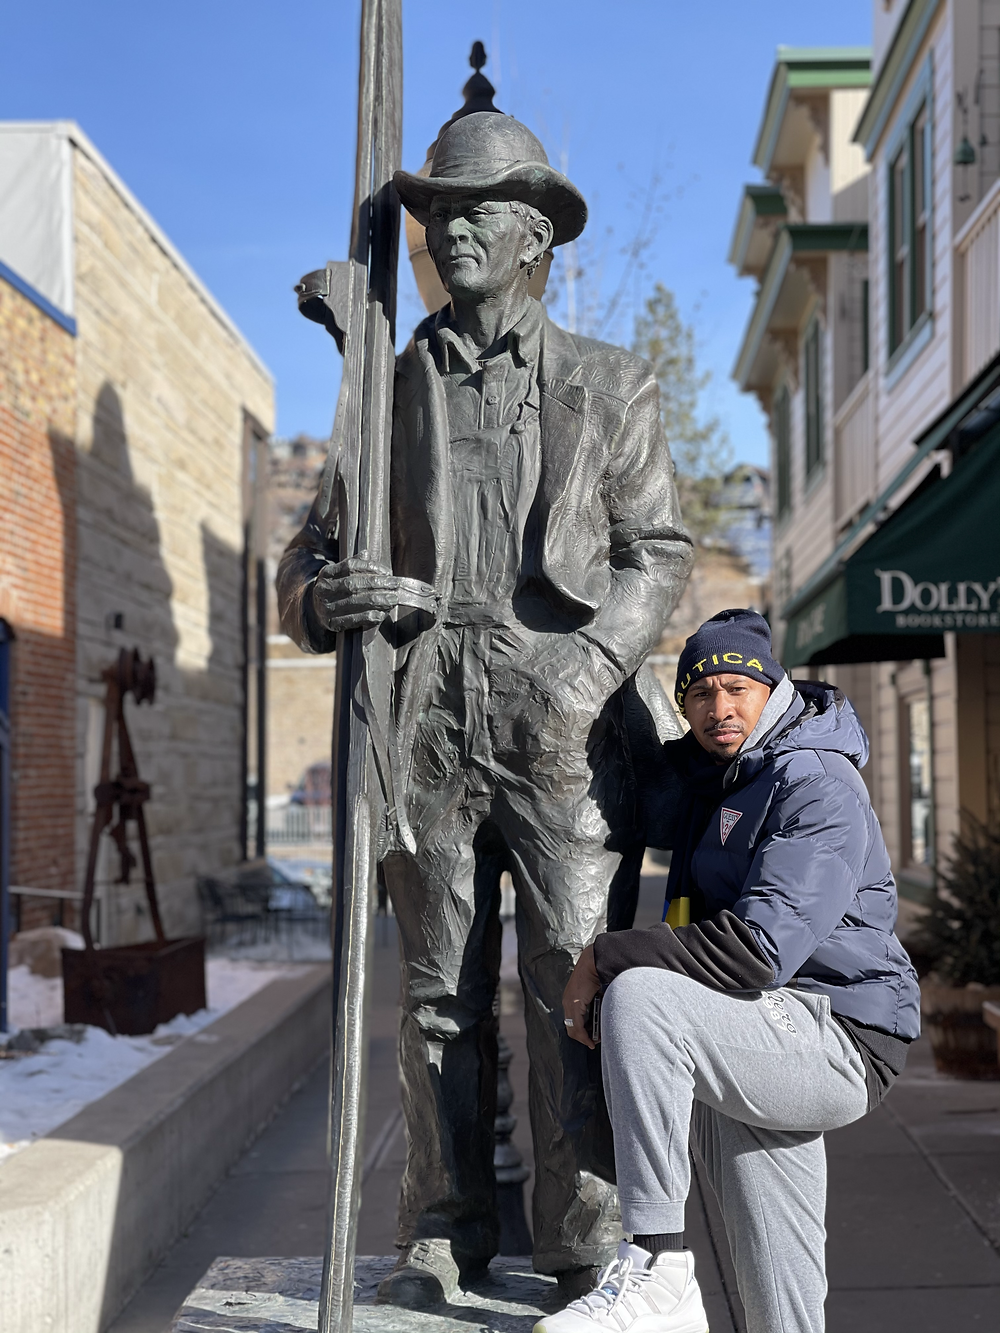 In front of Park City Museum & Dolly's Bookstore